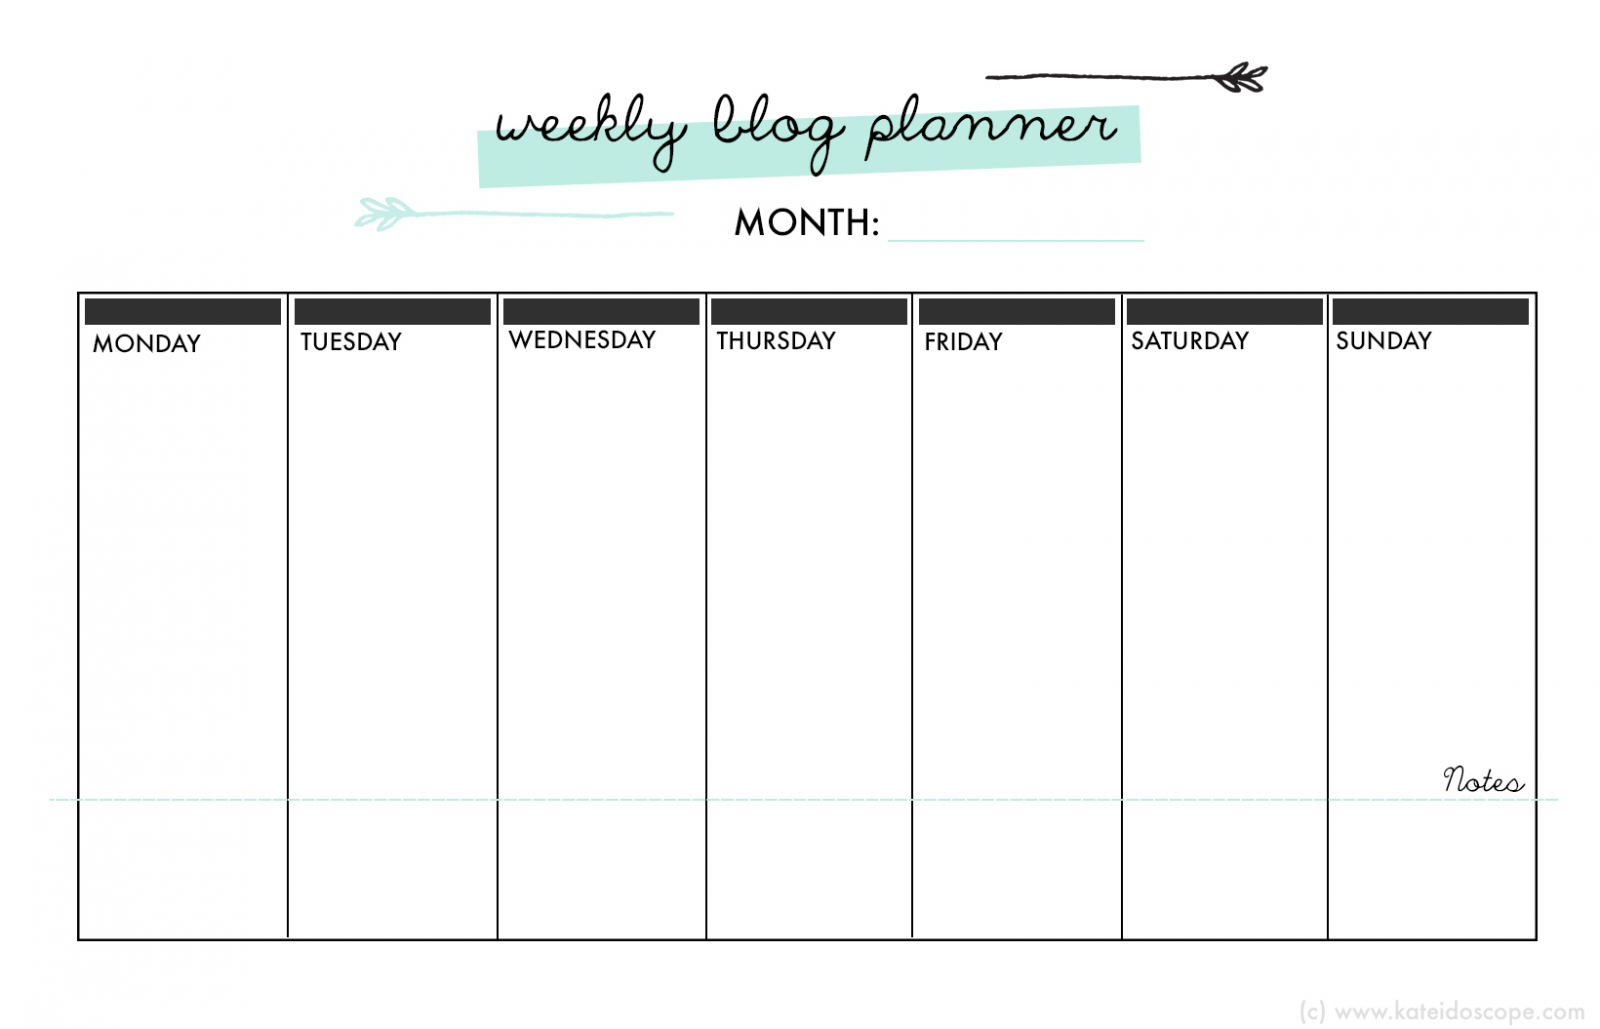 35mminstyle free weekly blogger planner